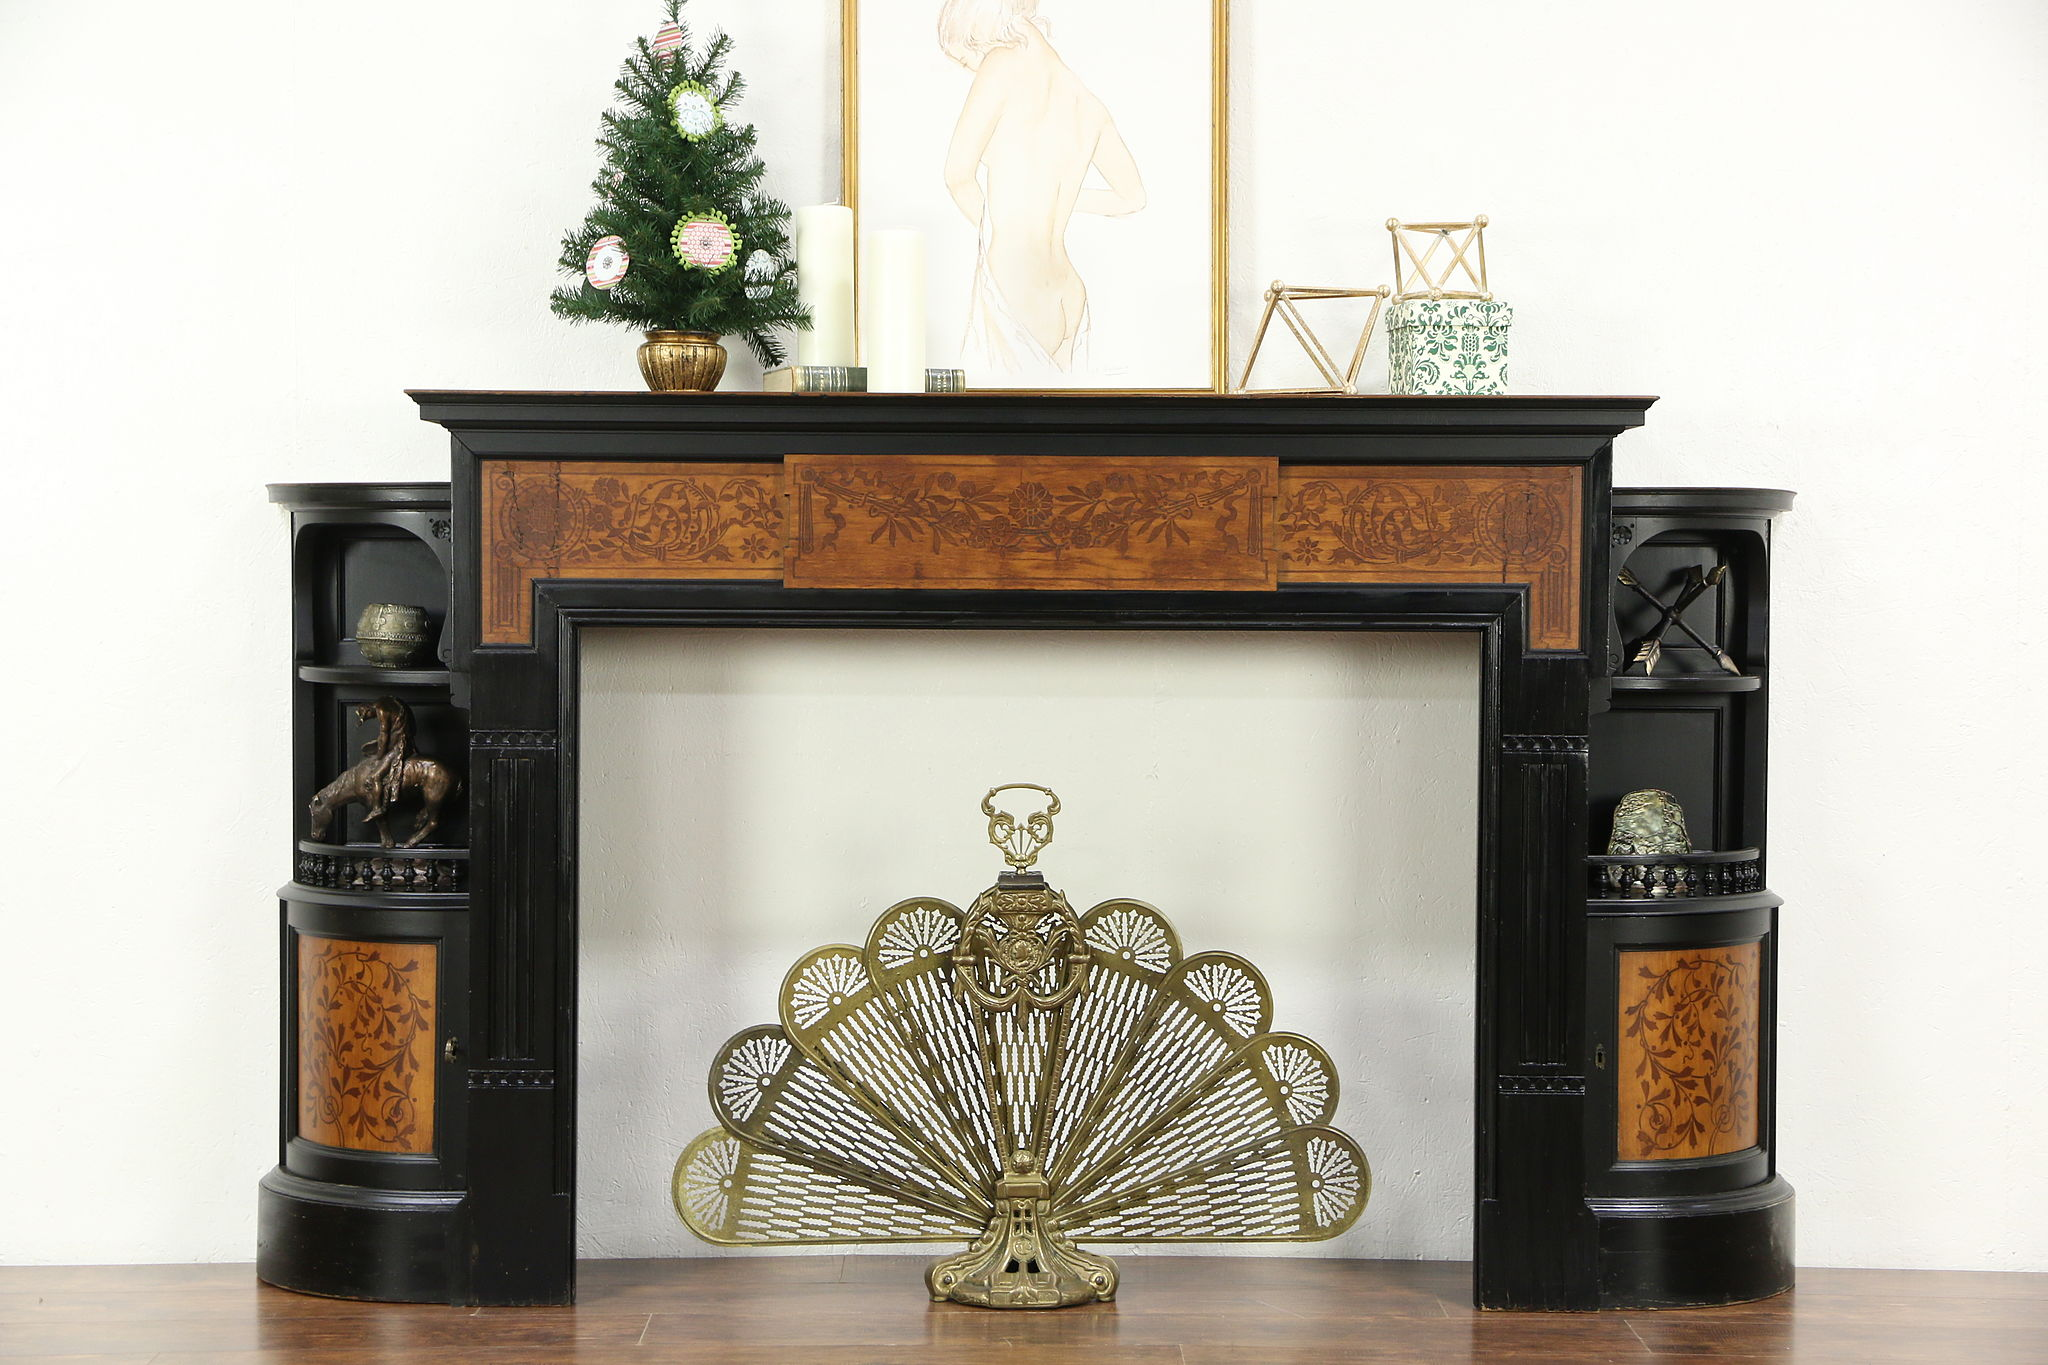 Cherry Fireplace Mantels Victorian Antique Architectural Salvage Ebonized Cherry Fireplace Mantel